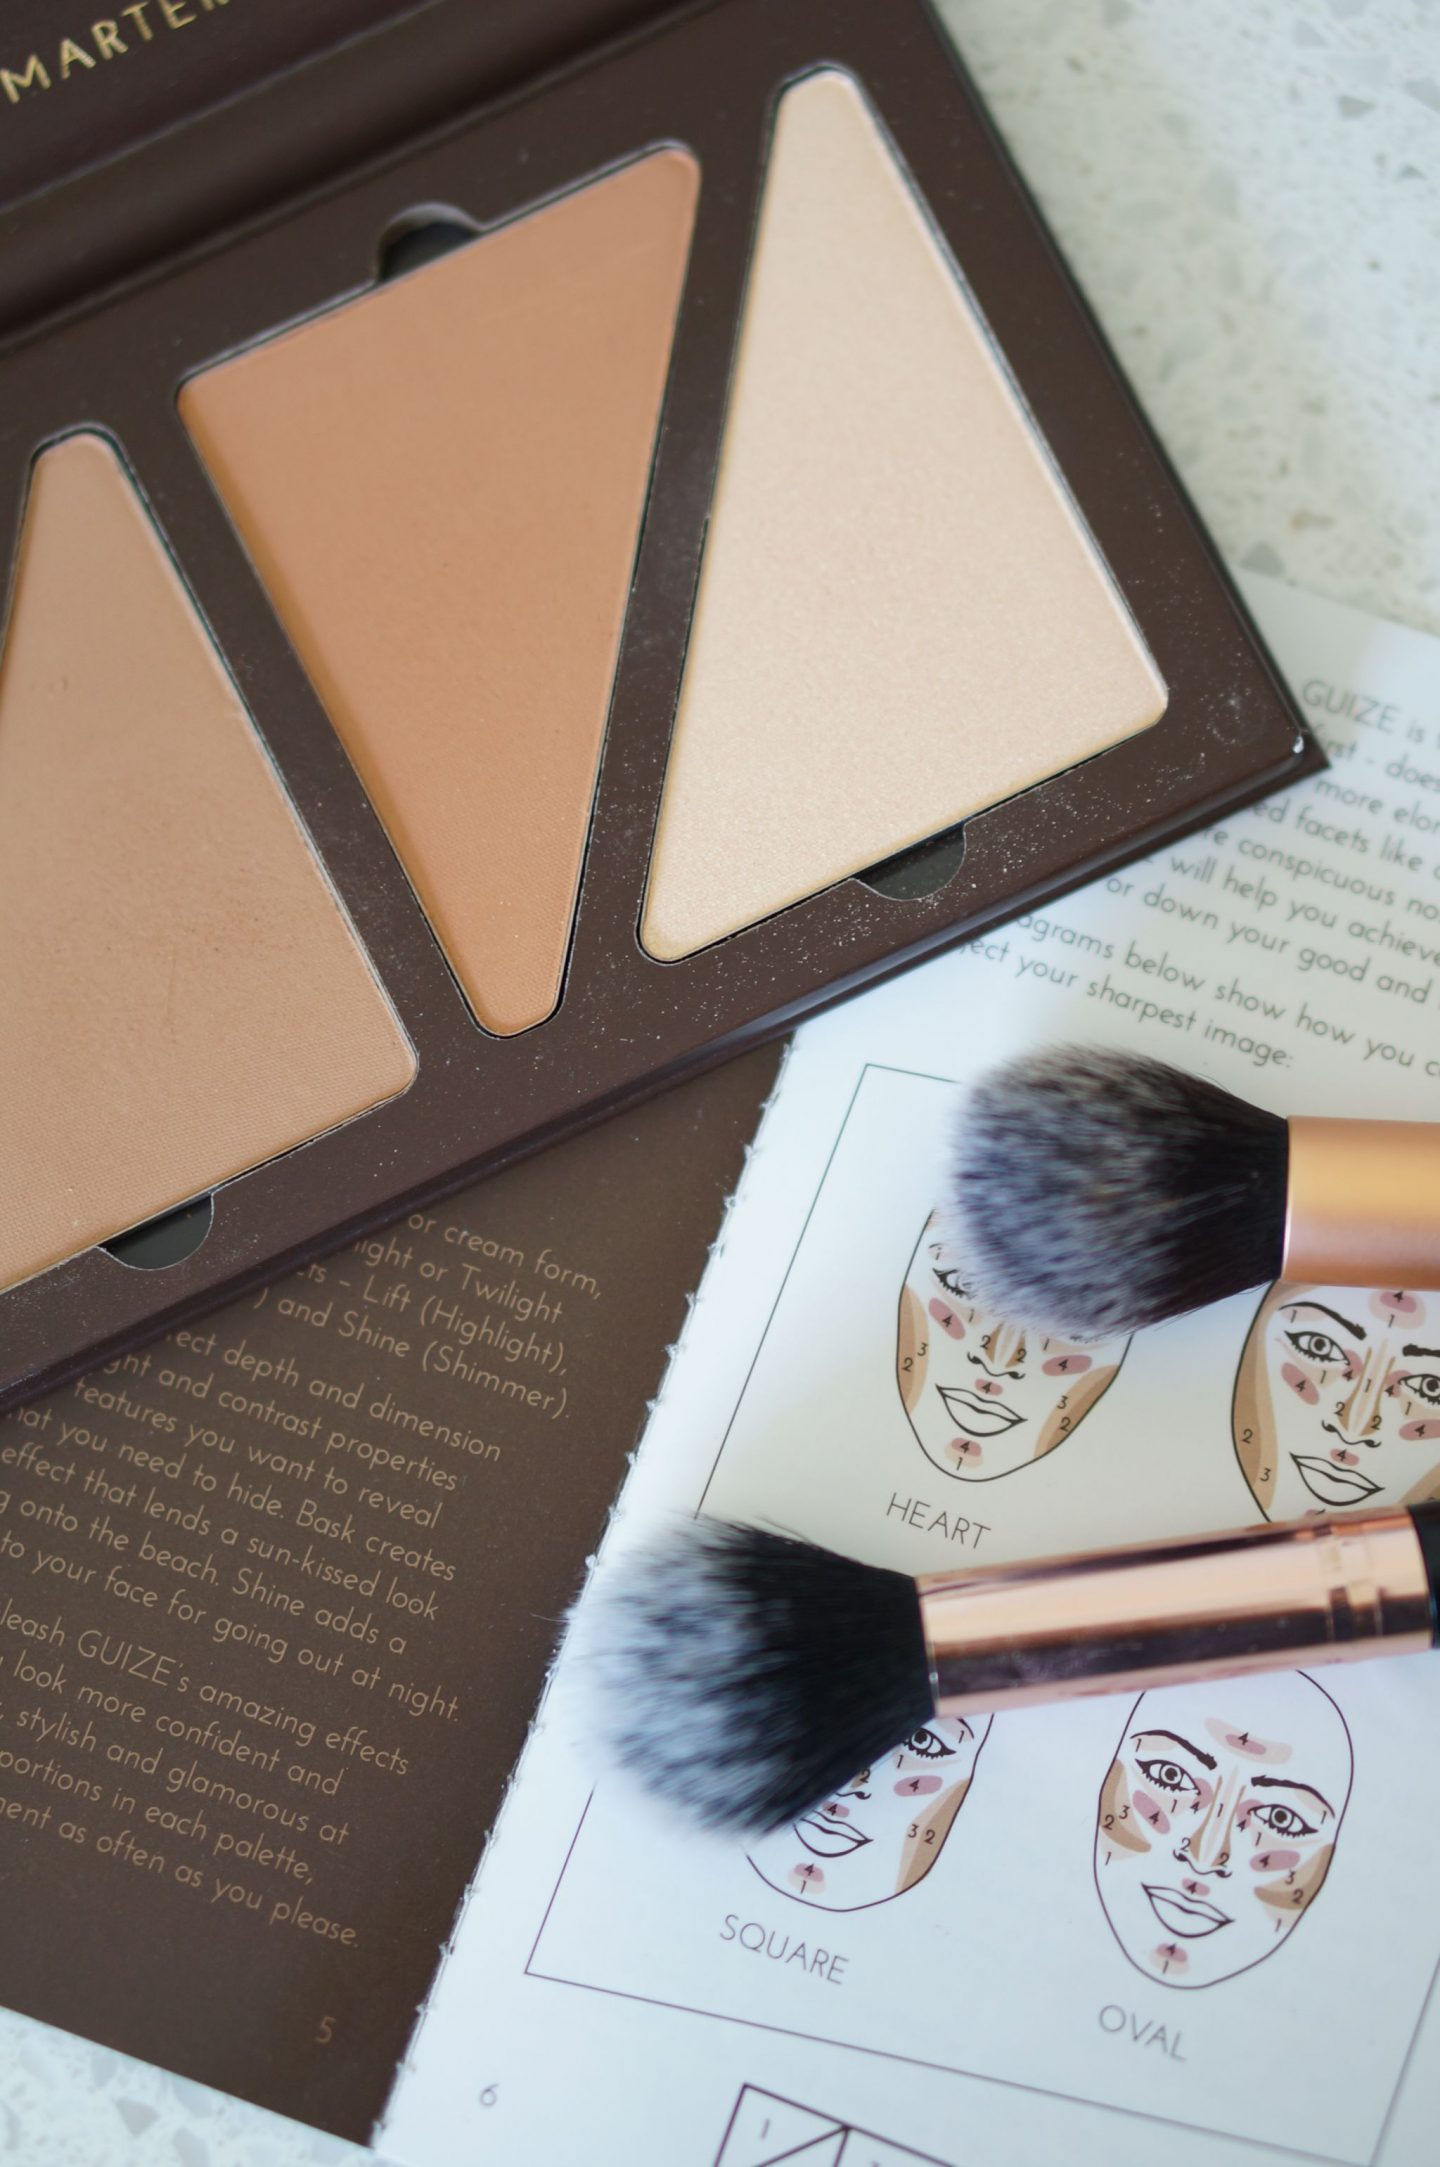 If you have ever wondered how to contour, this is the palette for you! The Guize Face Fx Contour Collection is fool proof and comes with a guide!